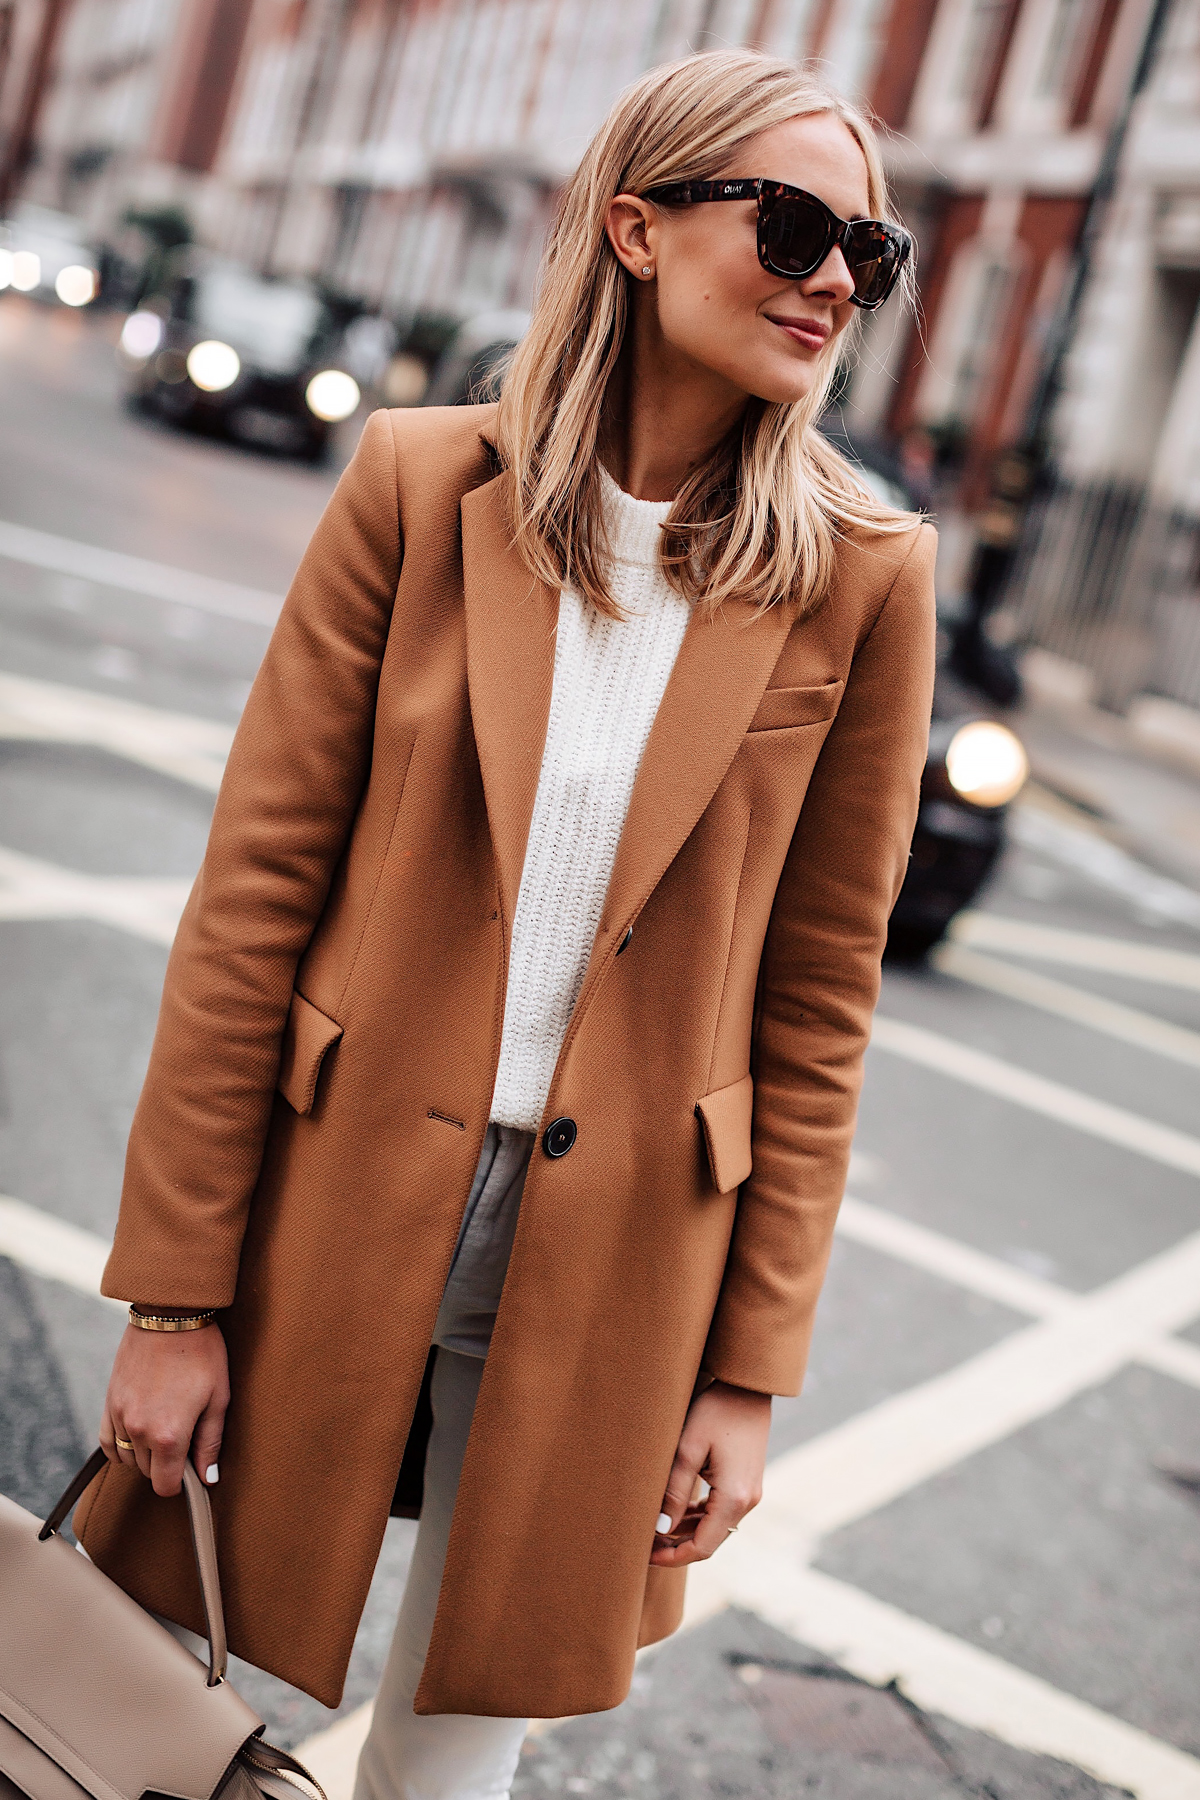 Blonde Woman Wearing Zara Camel Coat White Sweater Fashion Jackson San Diego Fashion Blogger London Street Style